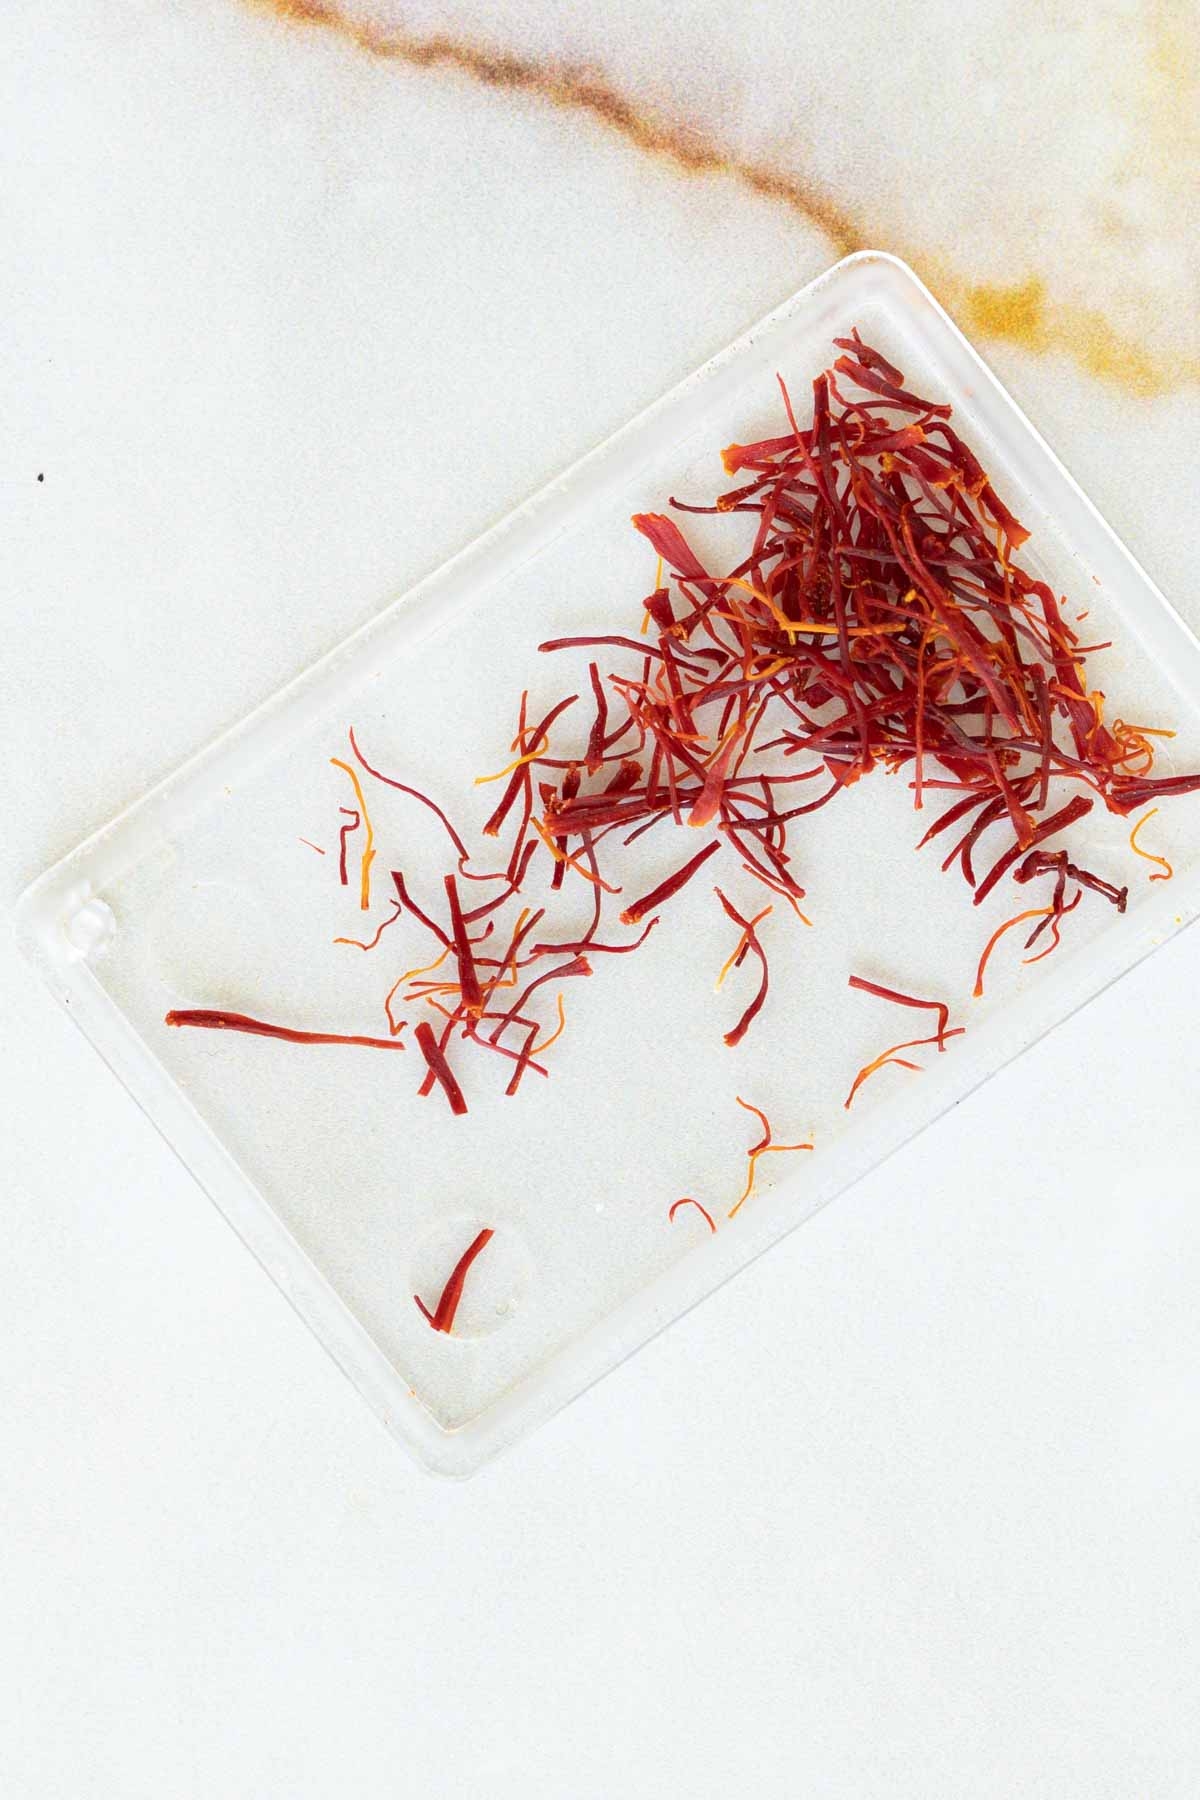 strands of saffron